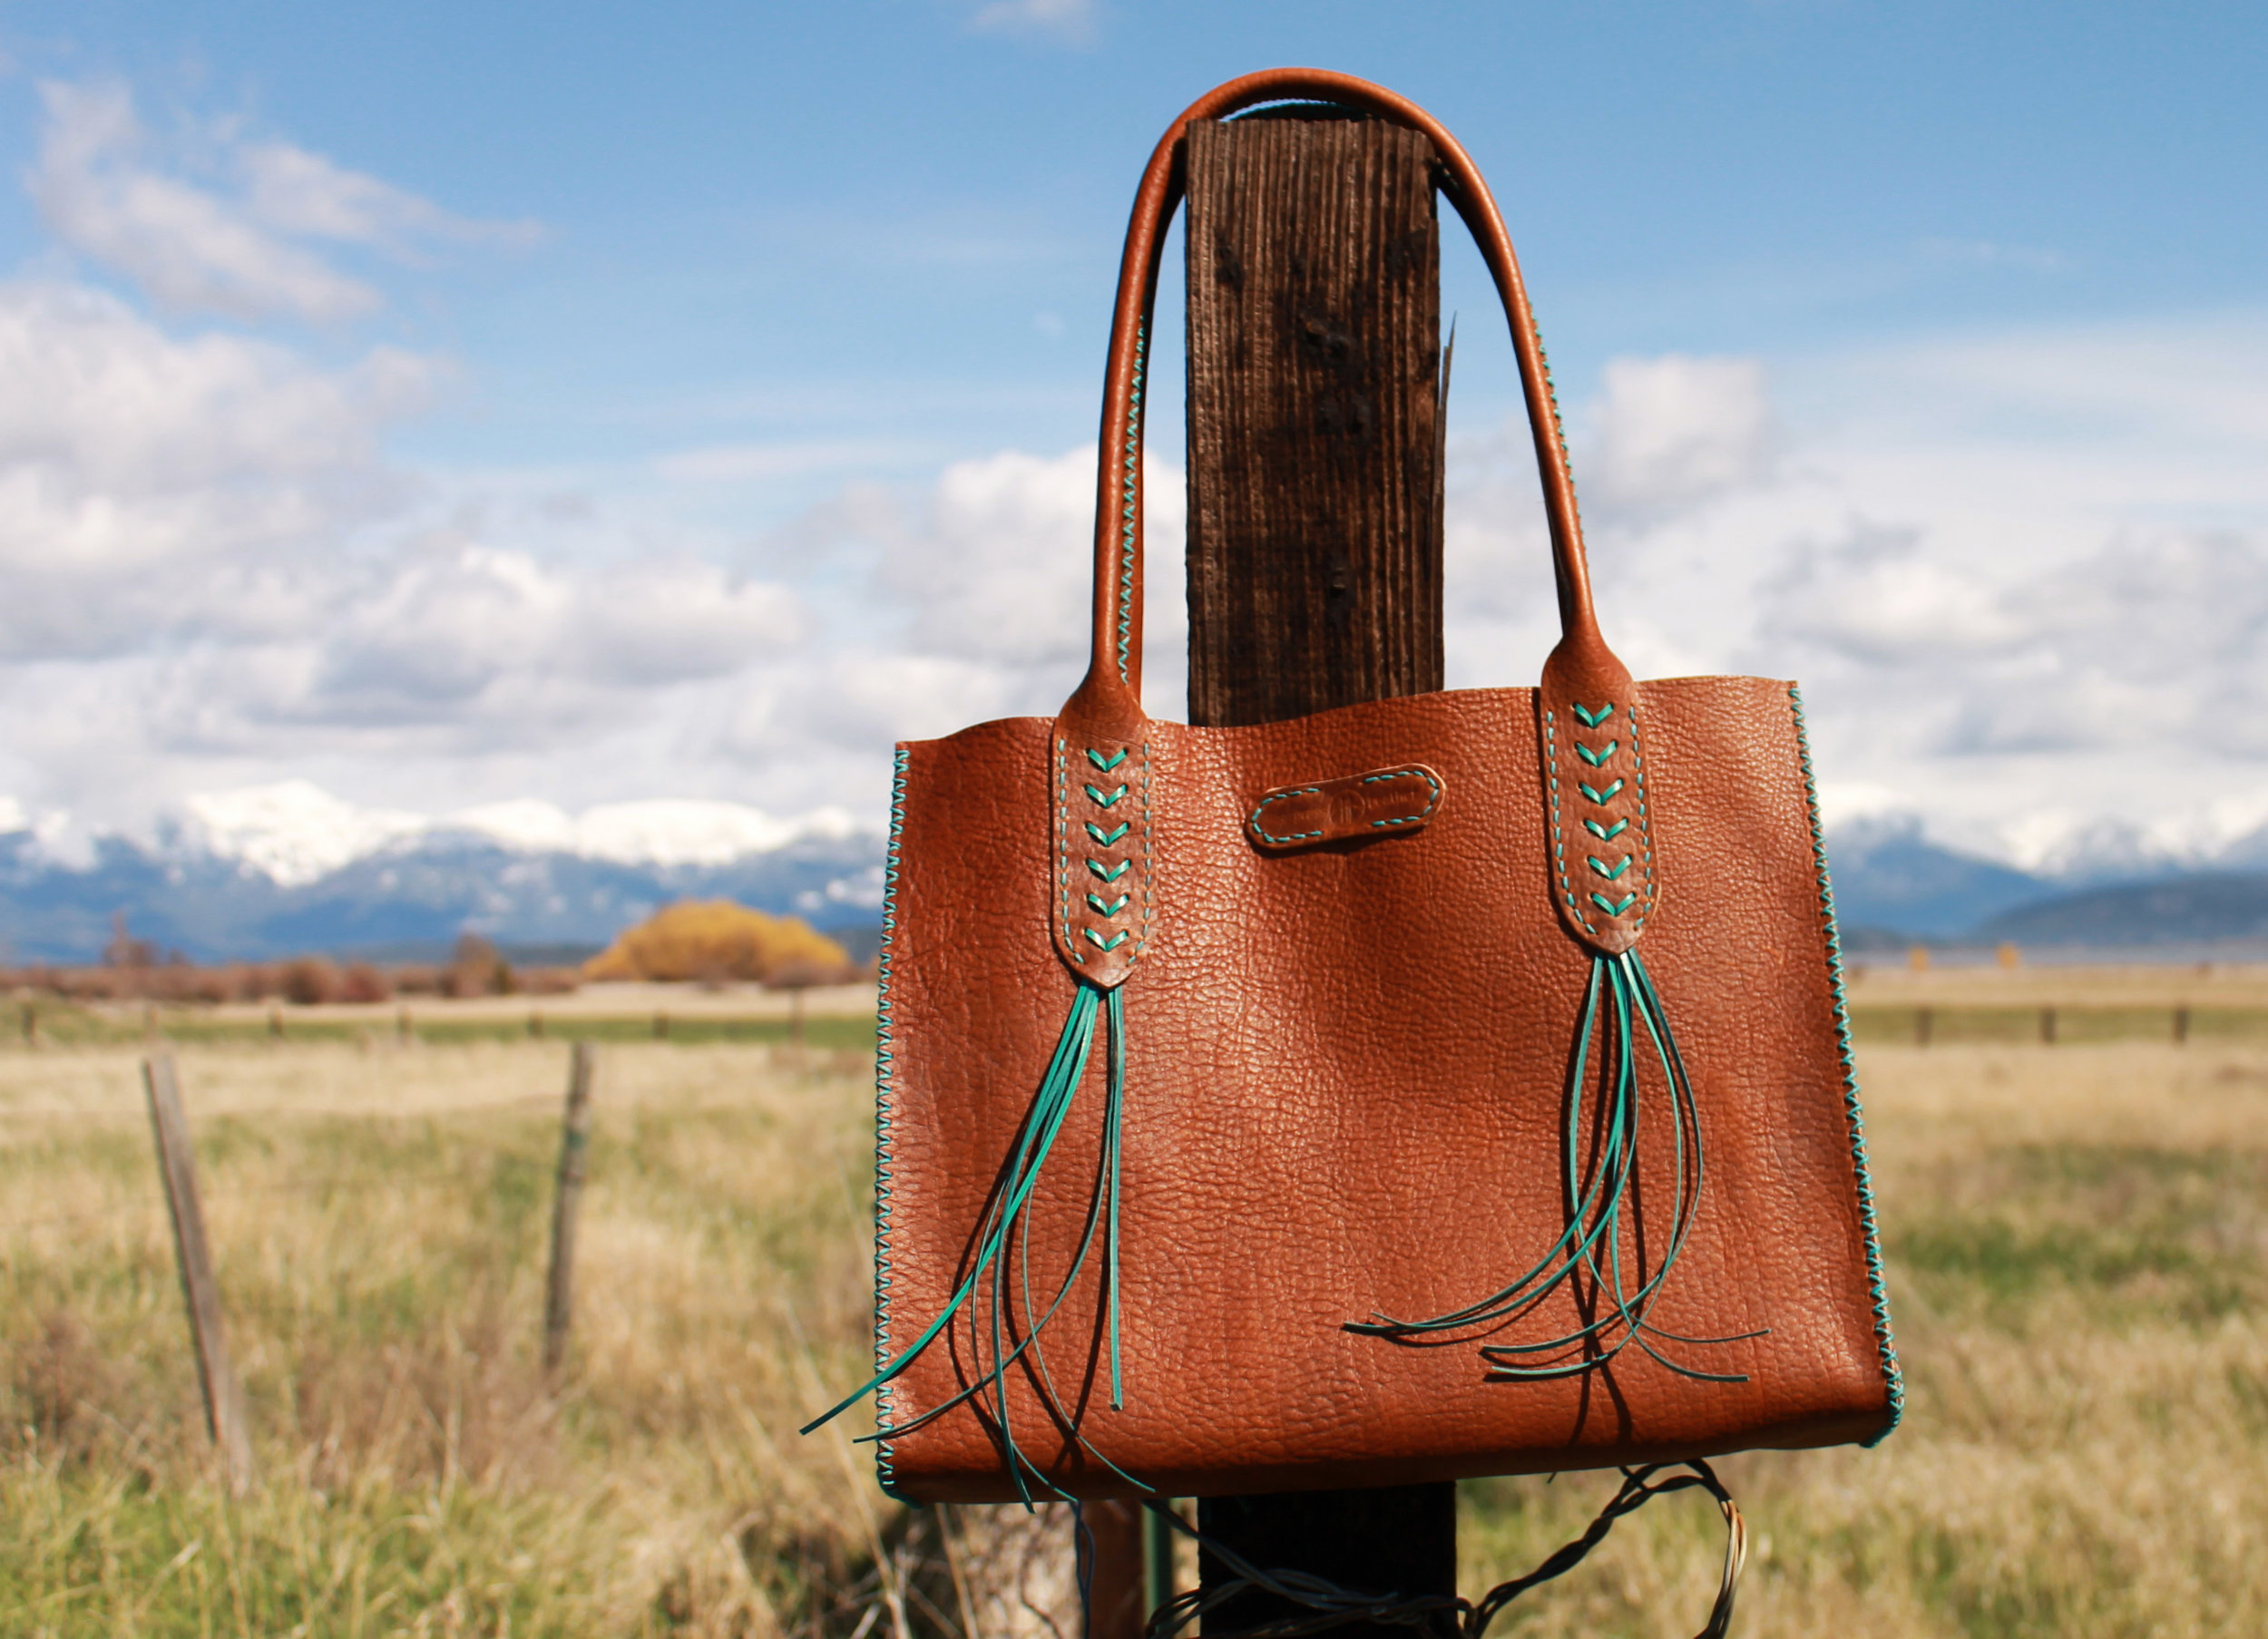 Luxury Oversized Tote with Leather Lace Western Design Bison Leather Made in Montana